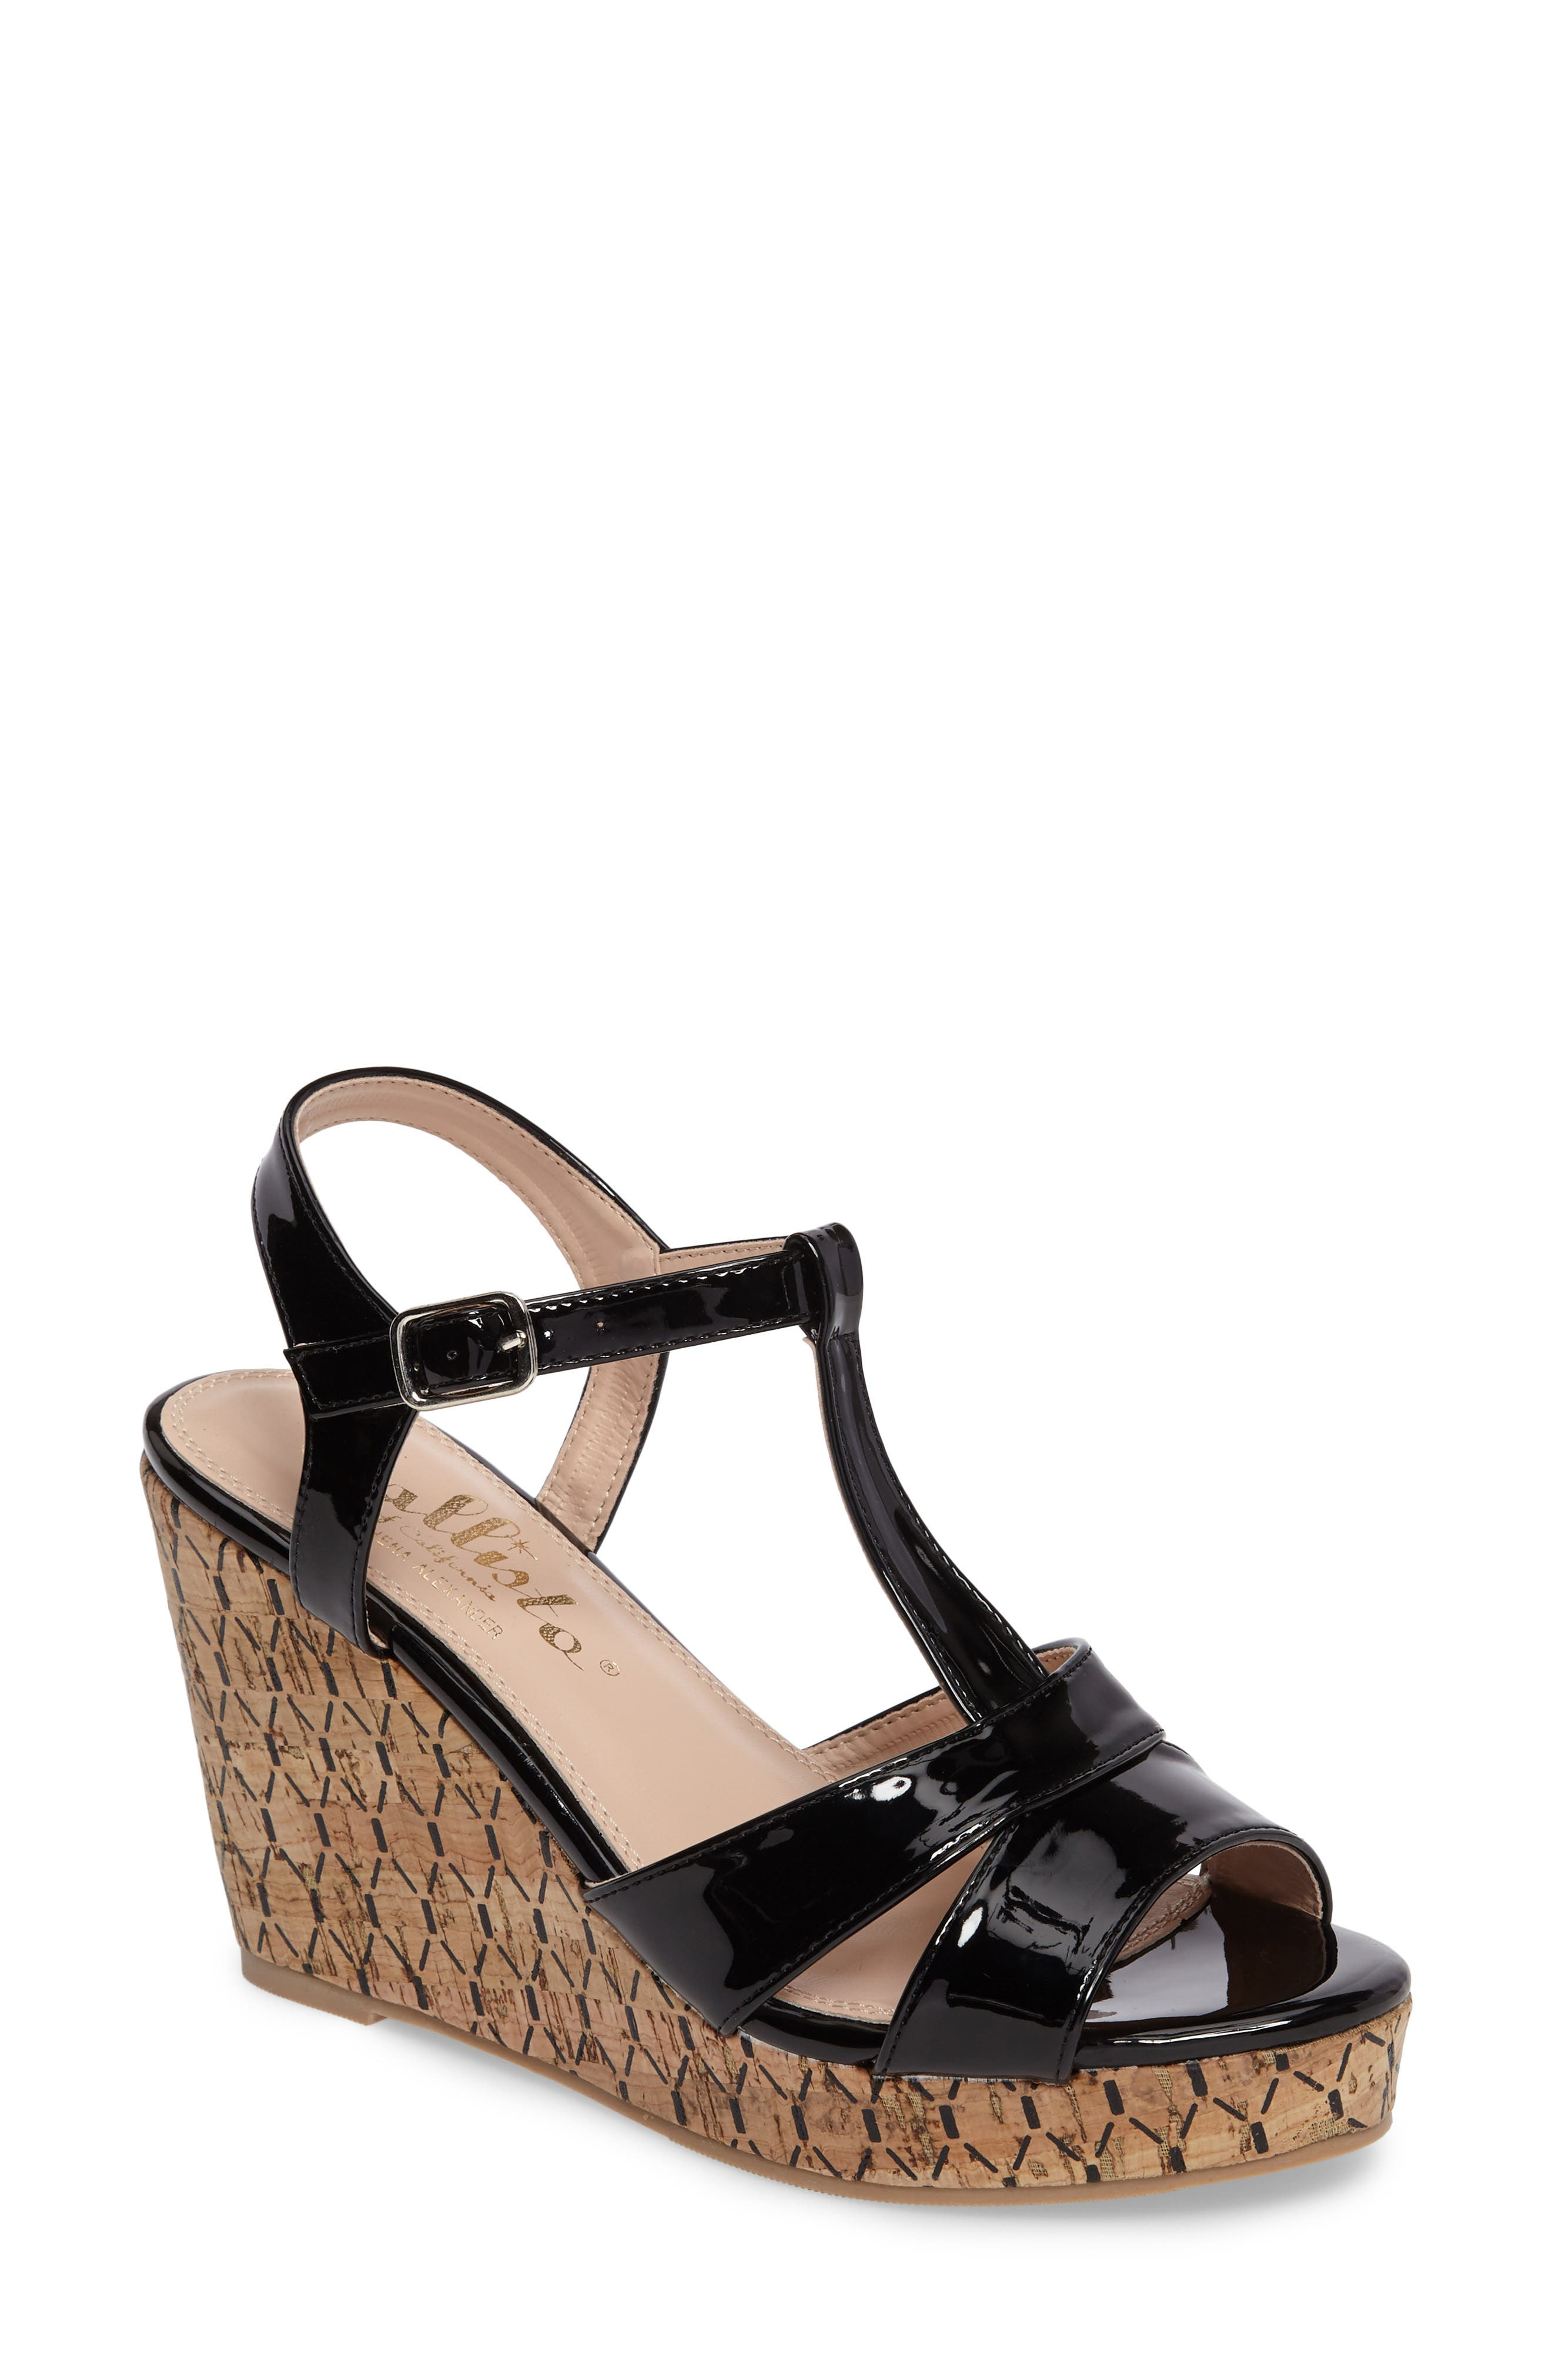 Teluride Platform Wedge Sandal,                         Main,                         color, BLACK SYNTHETIC PATENT